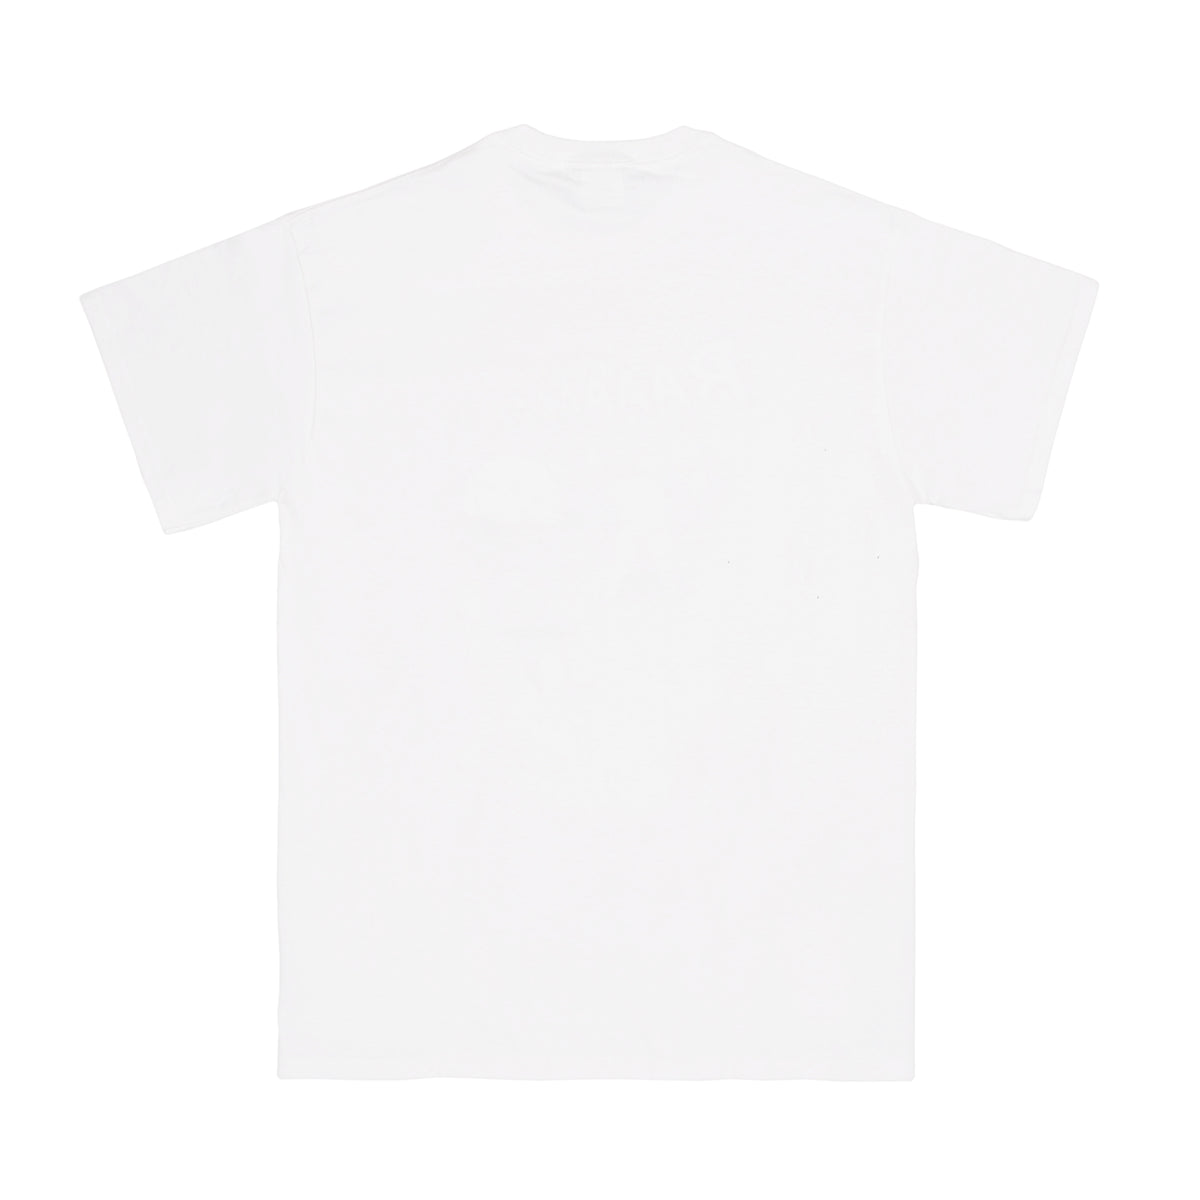 JOKARI white tee - RAVE skateboards